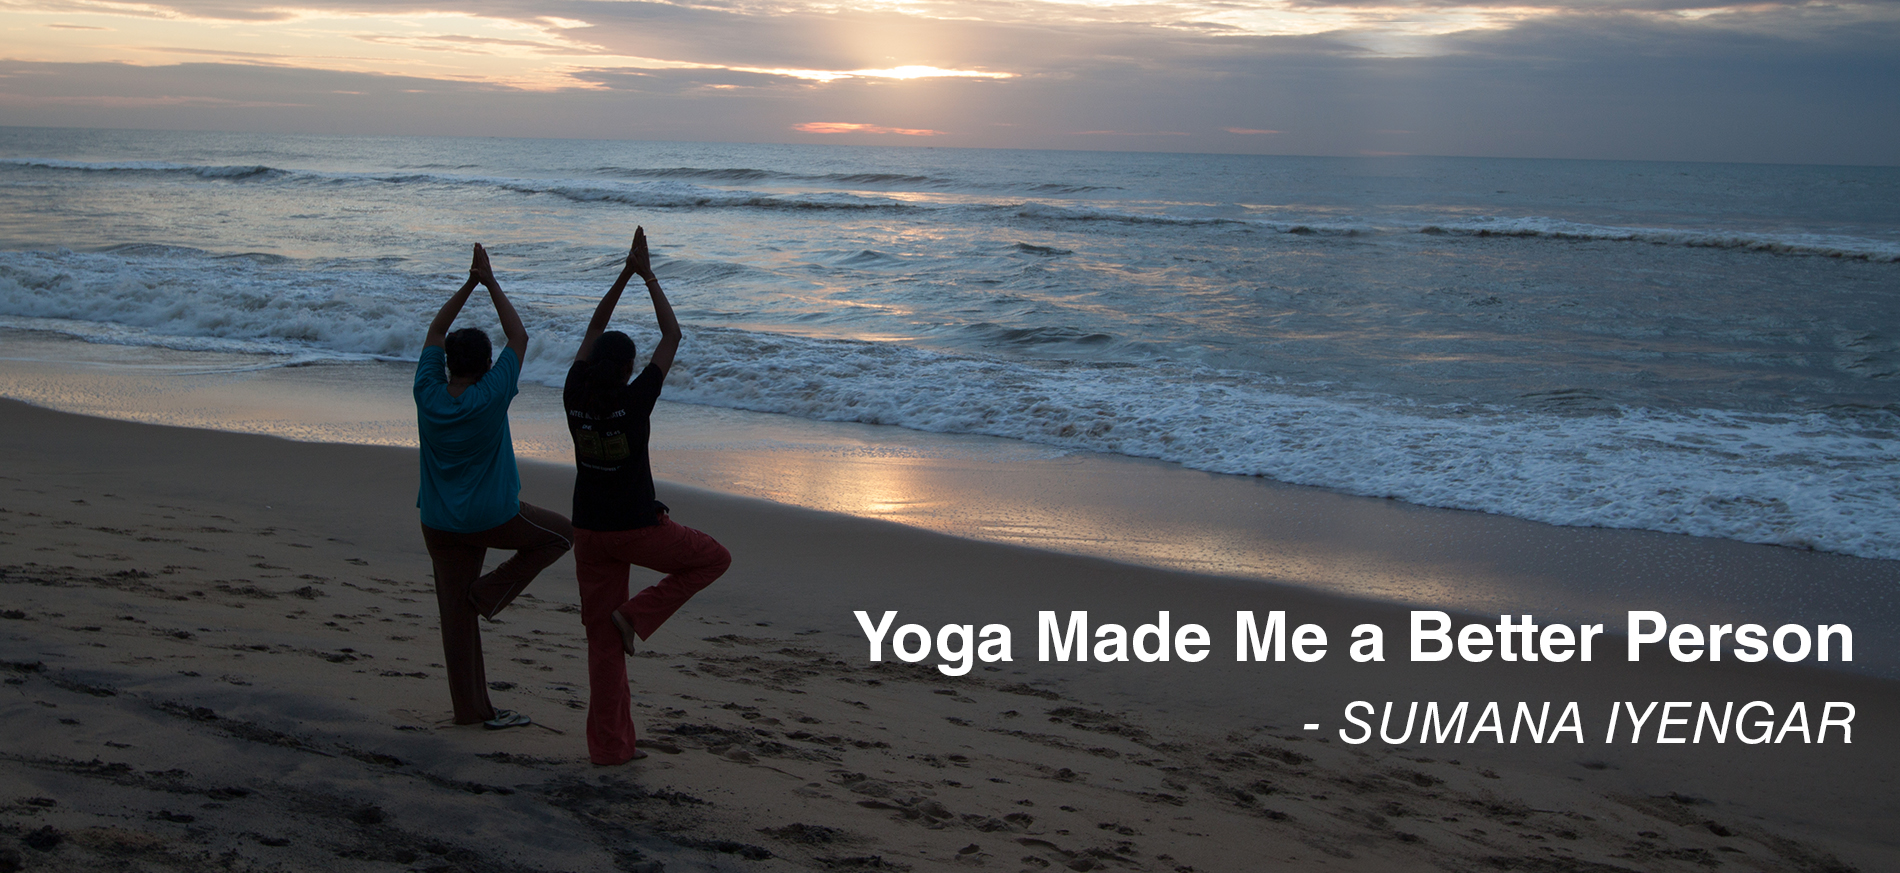 Yoga Made me a Better Person